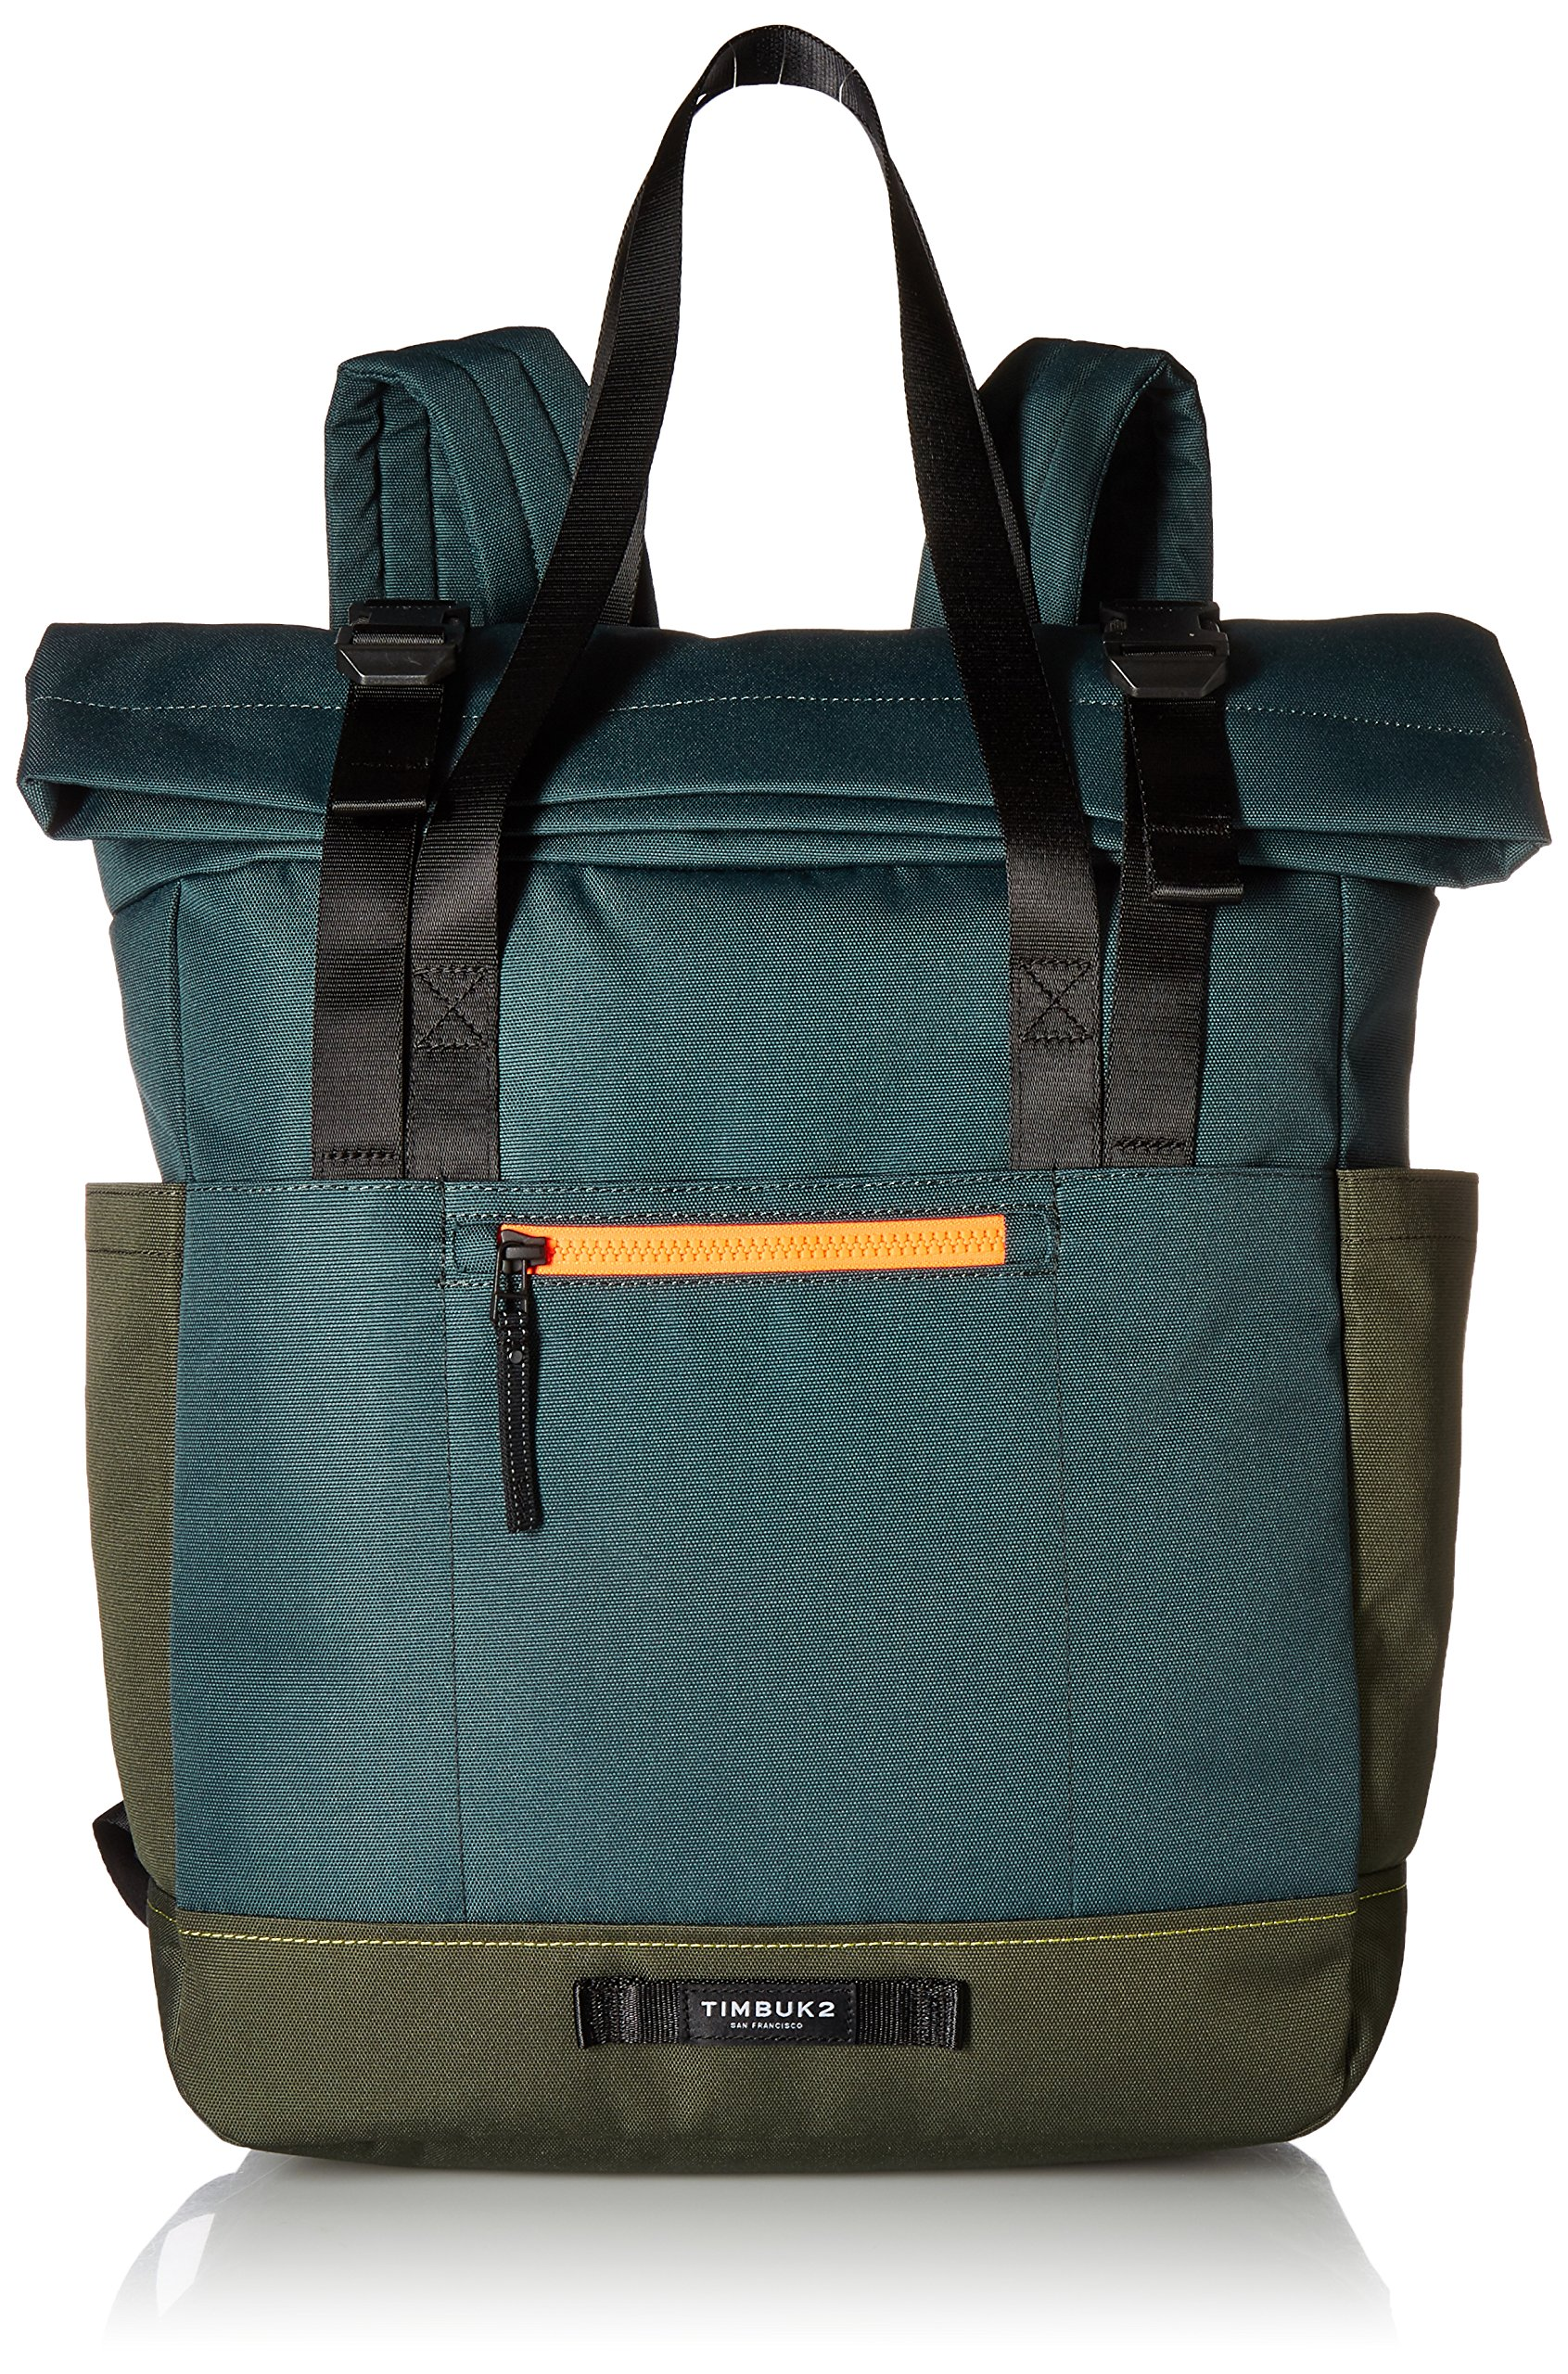 Timbuk2 Forge Pack Tote, OS, Toxic, One Size